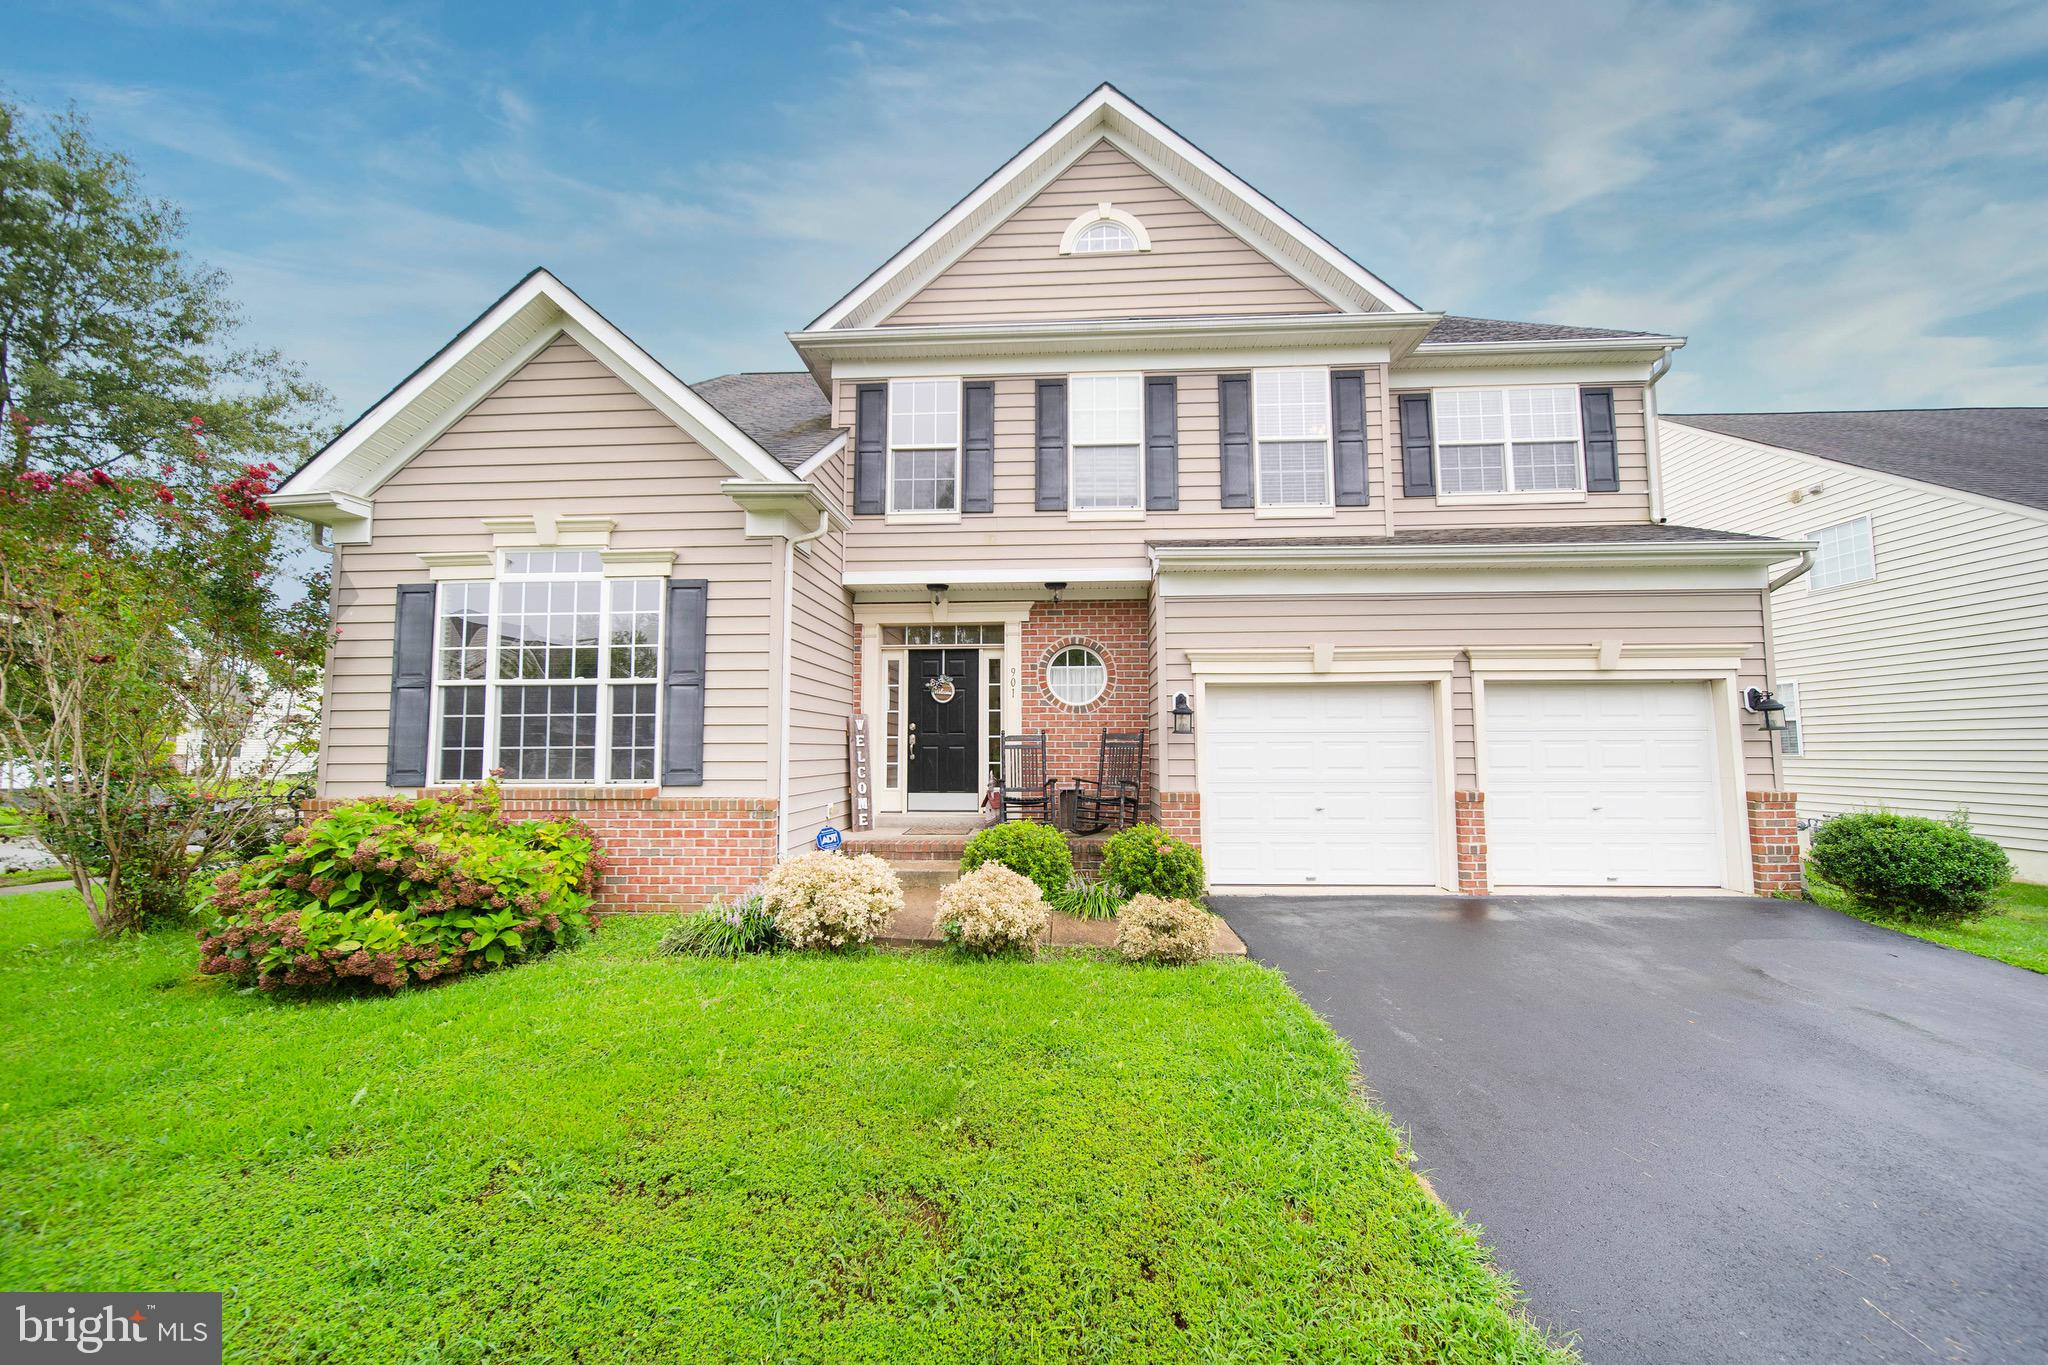 """Welcome to 134 Gloucester Blvd in the highly sought out neighborhood of Willow Grove Mill, within the Appoquinimink School District! Willow Grove Mill is conveniently located near DE 1 and 13, and minutes away from shopping, restaurants, and gas stations. This four bedroom, two and a half bath home is on a beautiful corner lot, and has a fully vinyl fenced yard (with a view of the community pond). This home has great curb appeal, with the brick water table and black shutters. Upon entrance, you will love the two story foyer, with a turned staircase, and an open feel! Most of the main level consists of hardwood flooring, and brand NEW carpet! Just to the left of the entrance, there is a large office with French doors, and to the right is the half bath. The kitchen is the perfect size, with an abundance of 42"""" cabinetry, a kitchen island, pantry, and a seating area that is perfect for a smaller breakfast table. You can access the backyard from the glass slider in the kitchen. You will LOVE the deck, with the large fenced in yard, and view of the pond!  The family room has a gas fireplace and mantel, perfect for snuggling up on a cold night! The main level also has a living room, and a large dining room with chair railing, and crown moulding. Upstairs you will find four generous sized bedrooms, two full bathrooms, and a large laundry room. The primary bedroom is HUGE, with cathedral ceilings, a ceiling fan, and plenty of space for a large bedroom set! The primary bath has ceramic tile throughout, tiled shower, double vanity sinks, and a large walk-in closet. The hall bath also has a double vanity sink, and tile flooring. The additional three bedrooms are a great size! This home has an ample amount of windows, that fill the home with natural light! The basement is unfinished, with tons of potential. The basement also has a walk up to the backyard, and a rough in for a future full bathroom! This home has so much to offer! You couldn't ask for a friendlier neighborhood! S"""